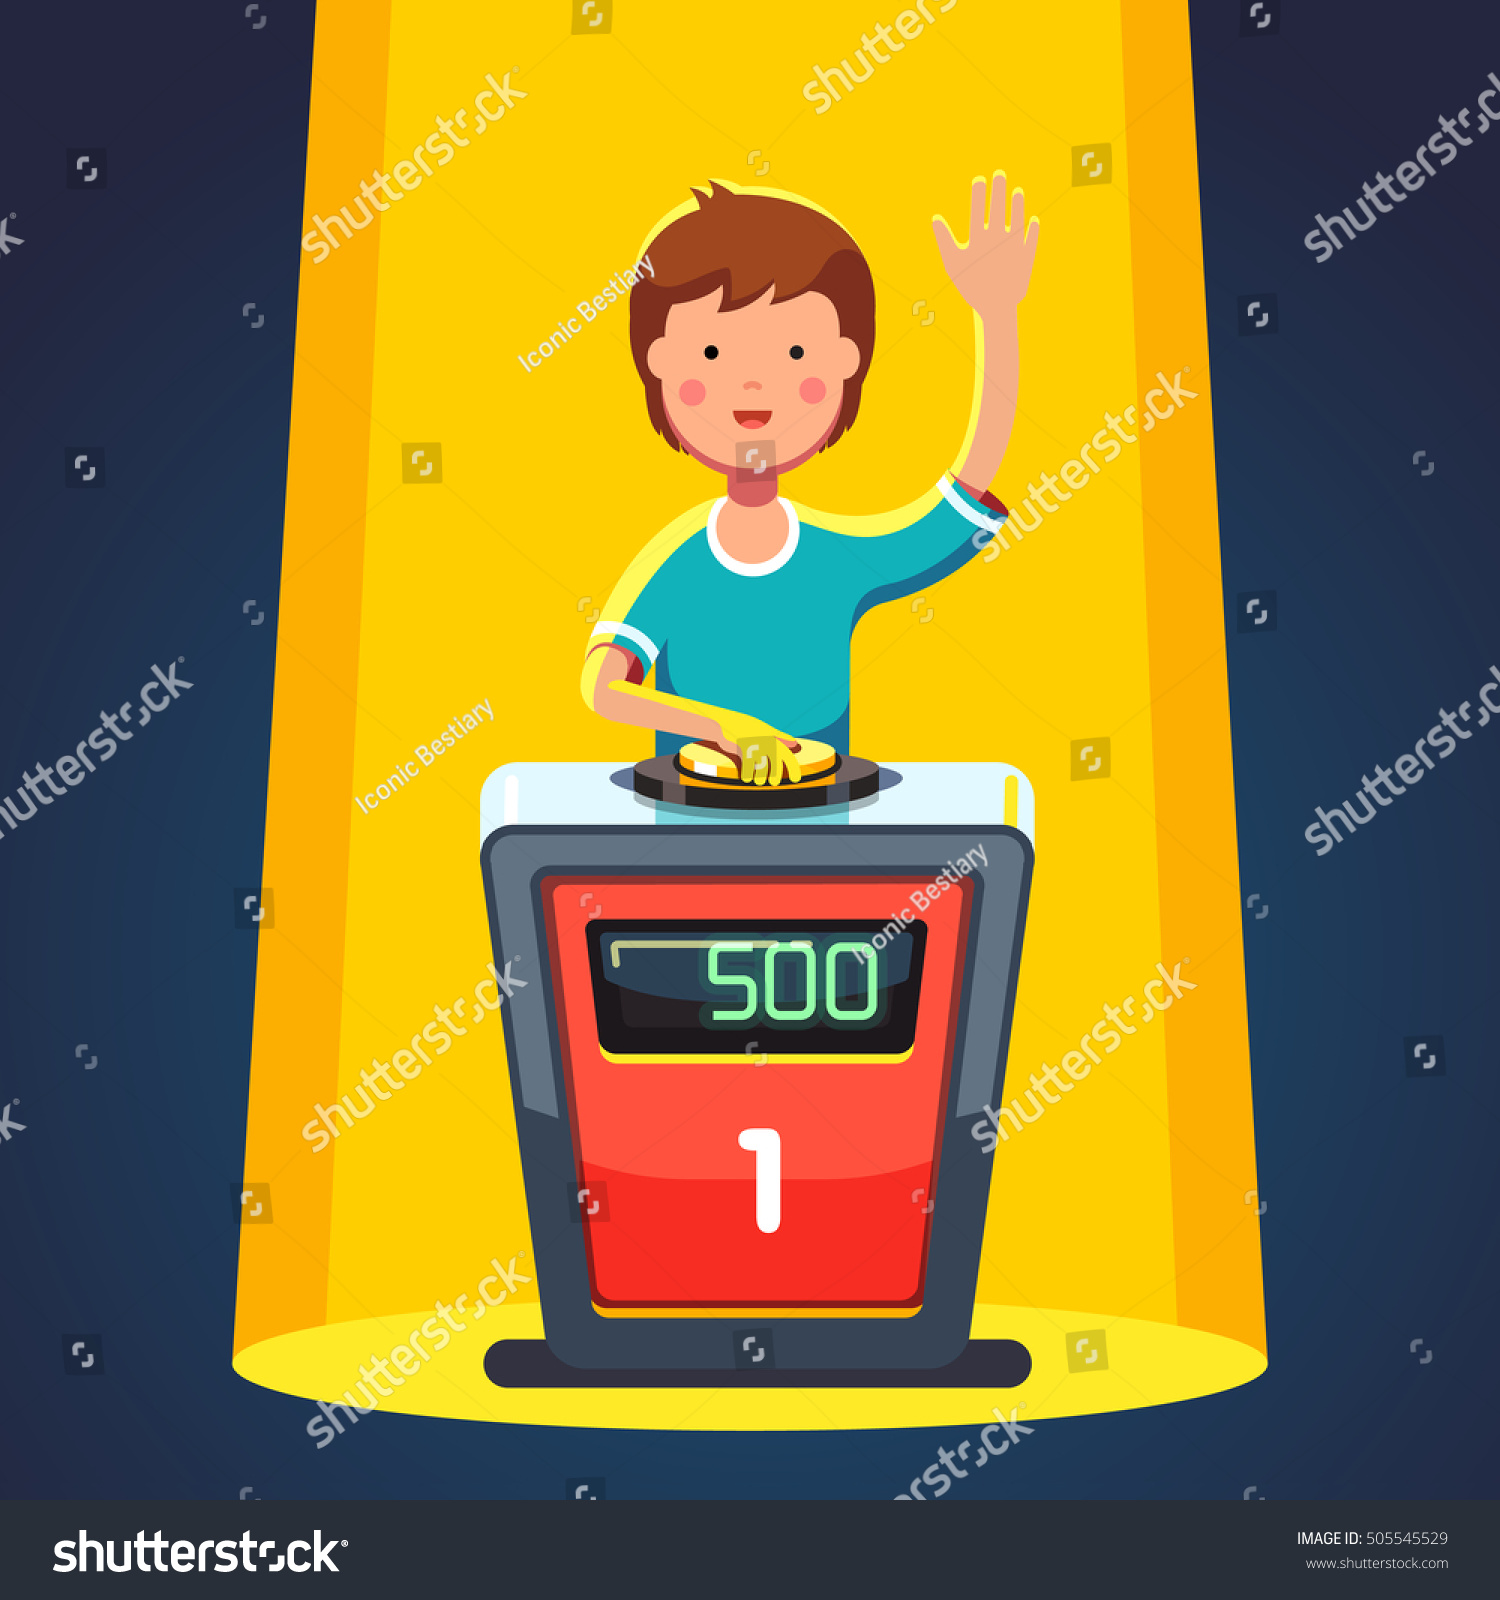 School Kid Playing Quiz Game Answering Stock Vector Royalty Free Player Buzzer Circuit Diagram Question Standing At The Stand With Button Boy Pressed